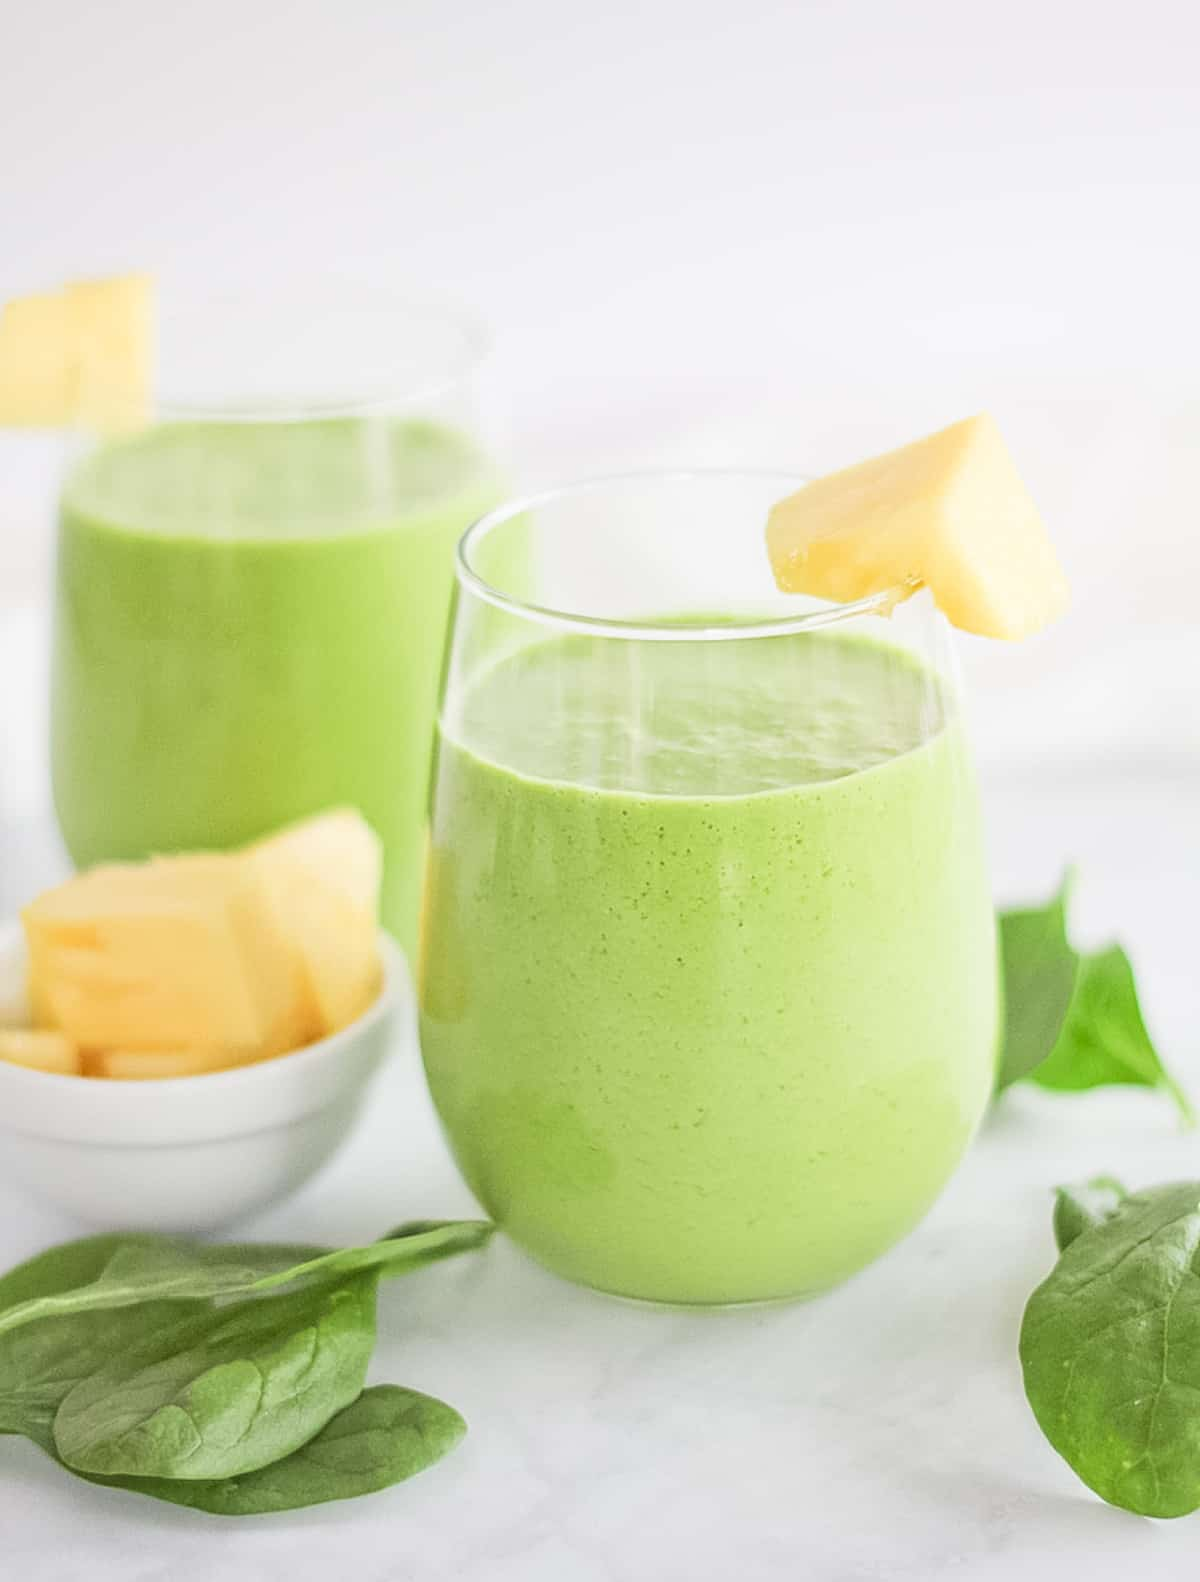 Two glass cups filled with pineapple green smoothie surrounded by spinach leaves and chunks of pineapple.